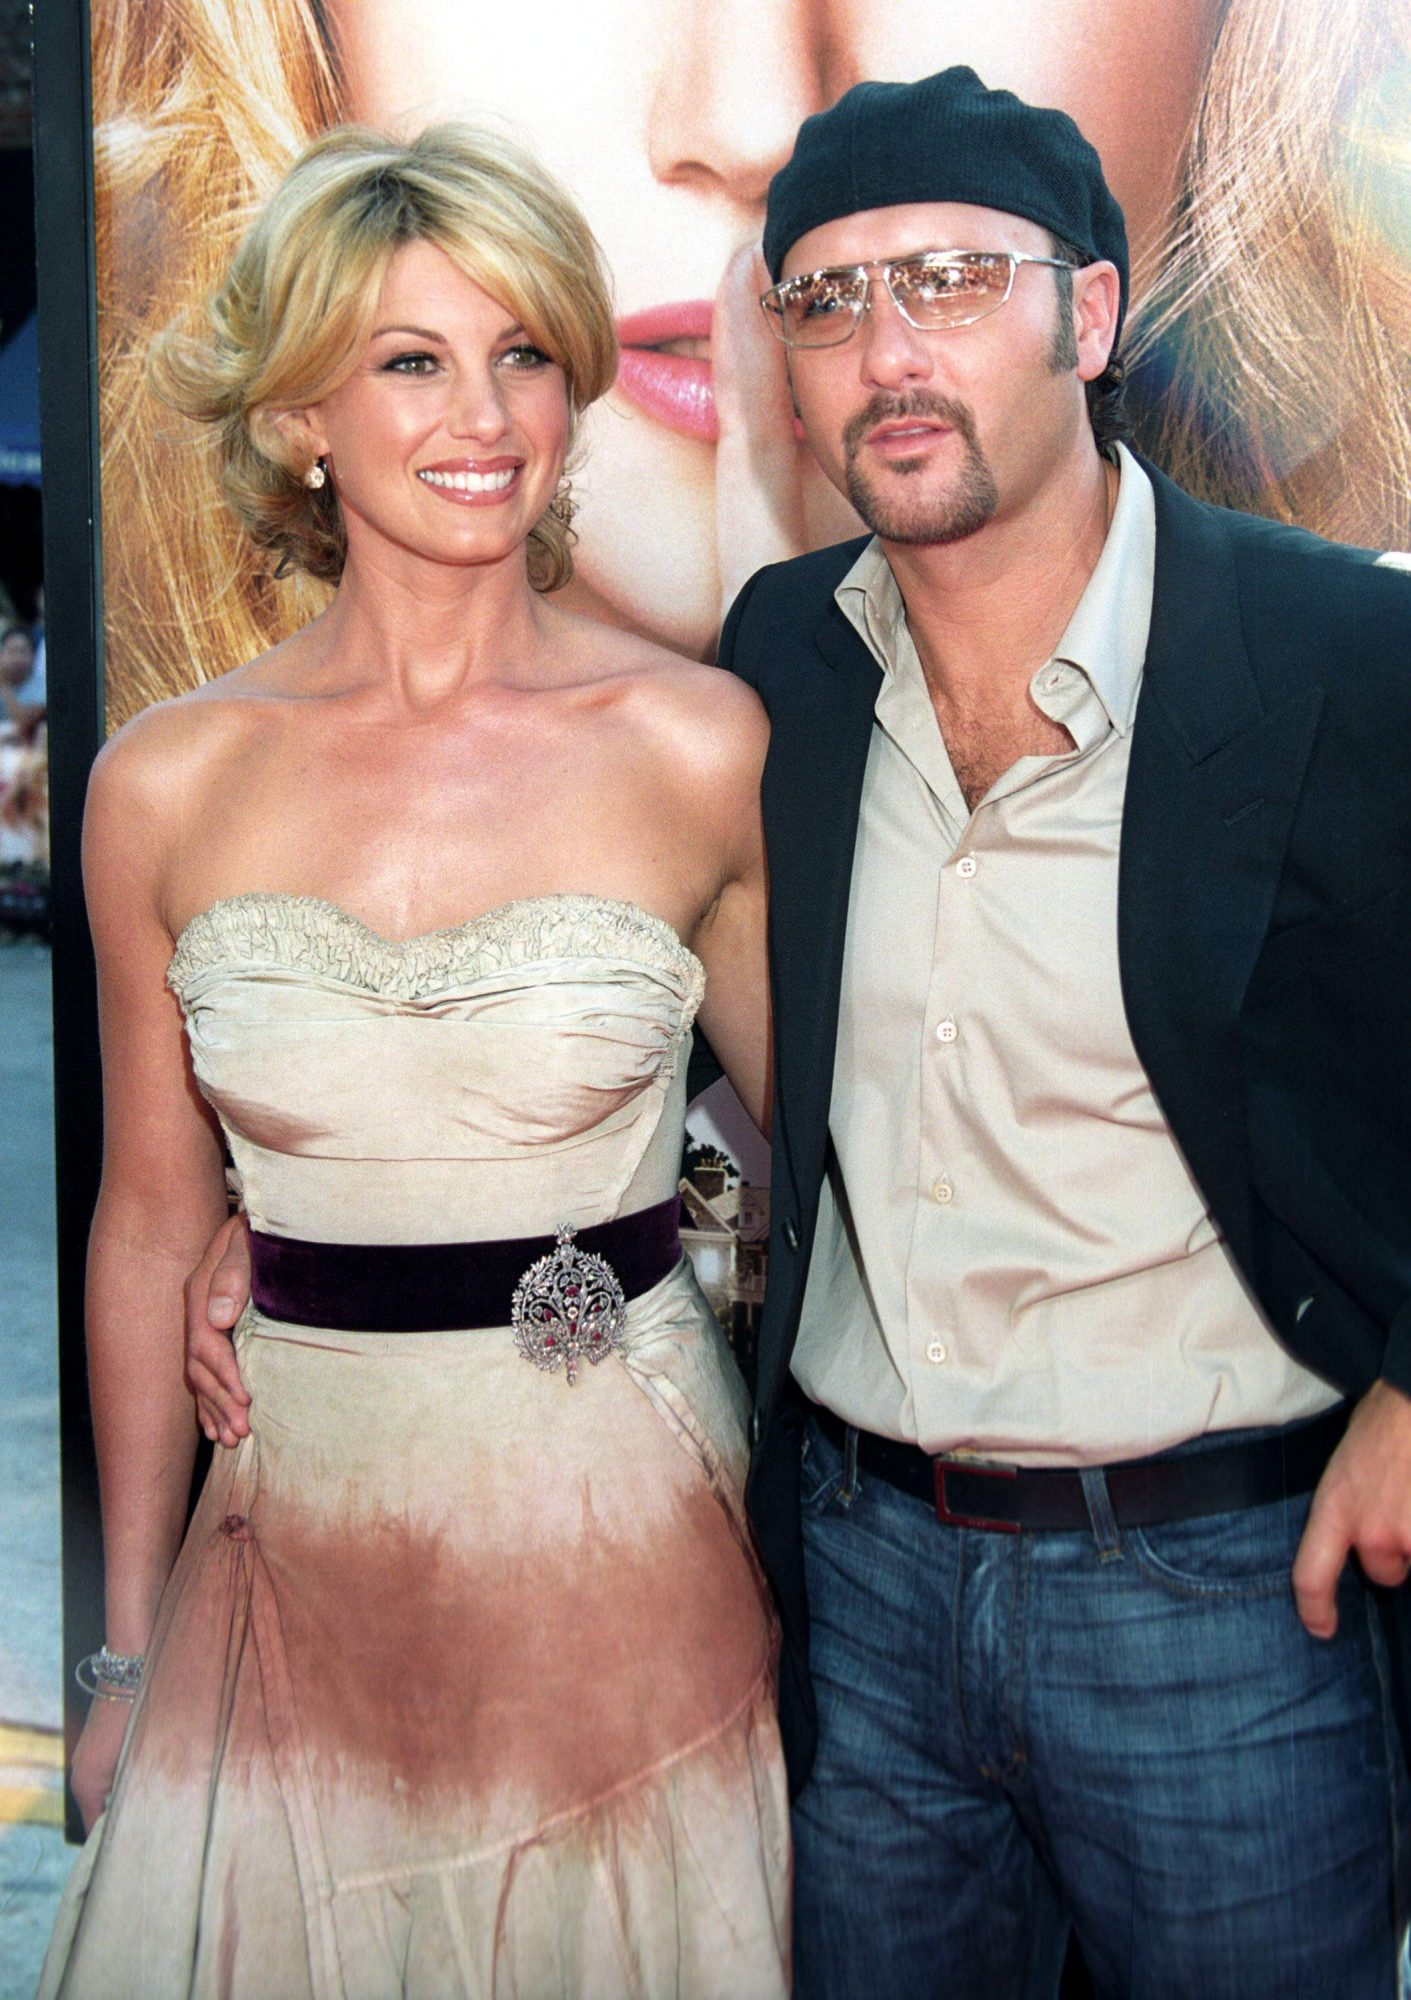 Premiere of Stepford Wives, 2004